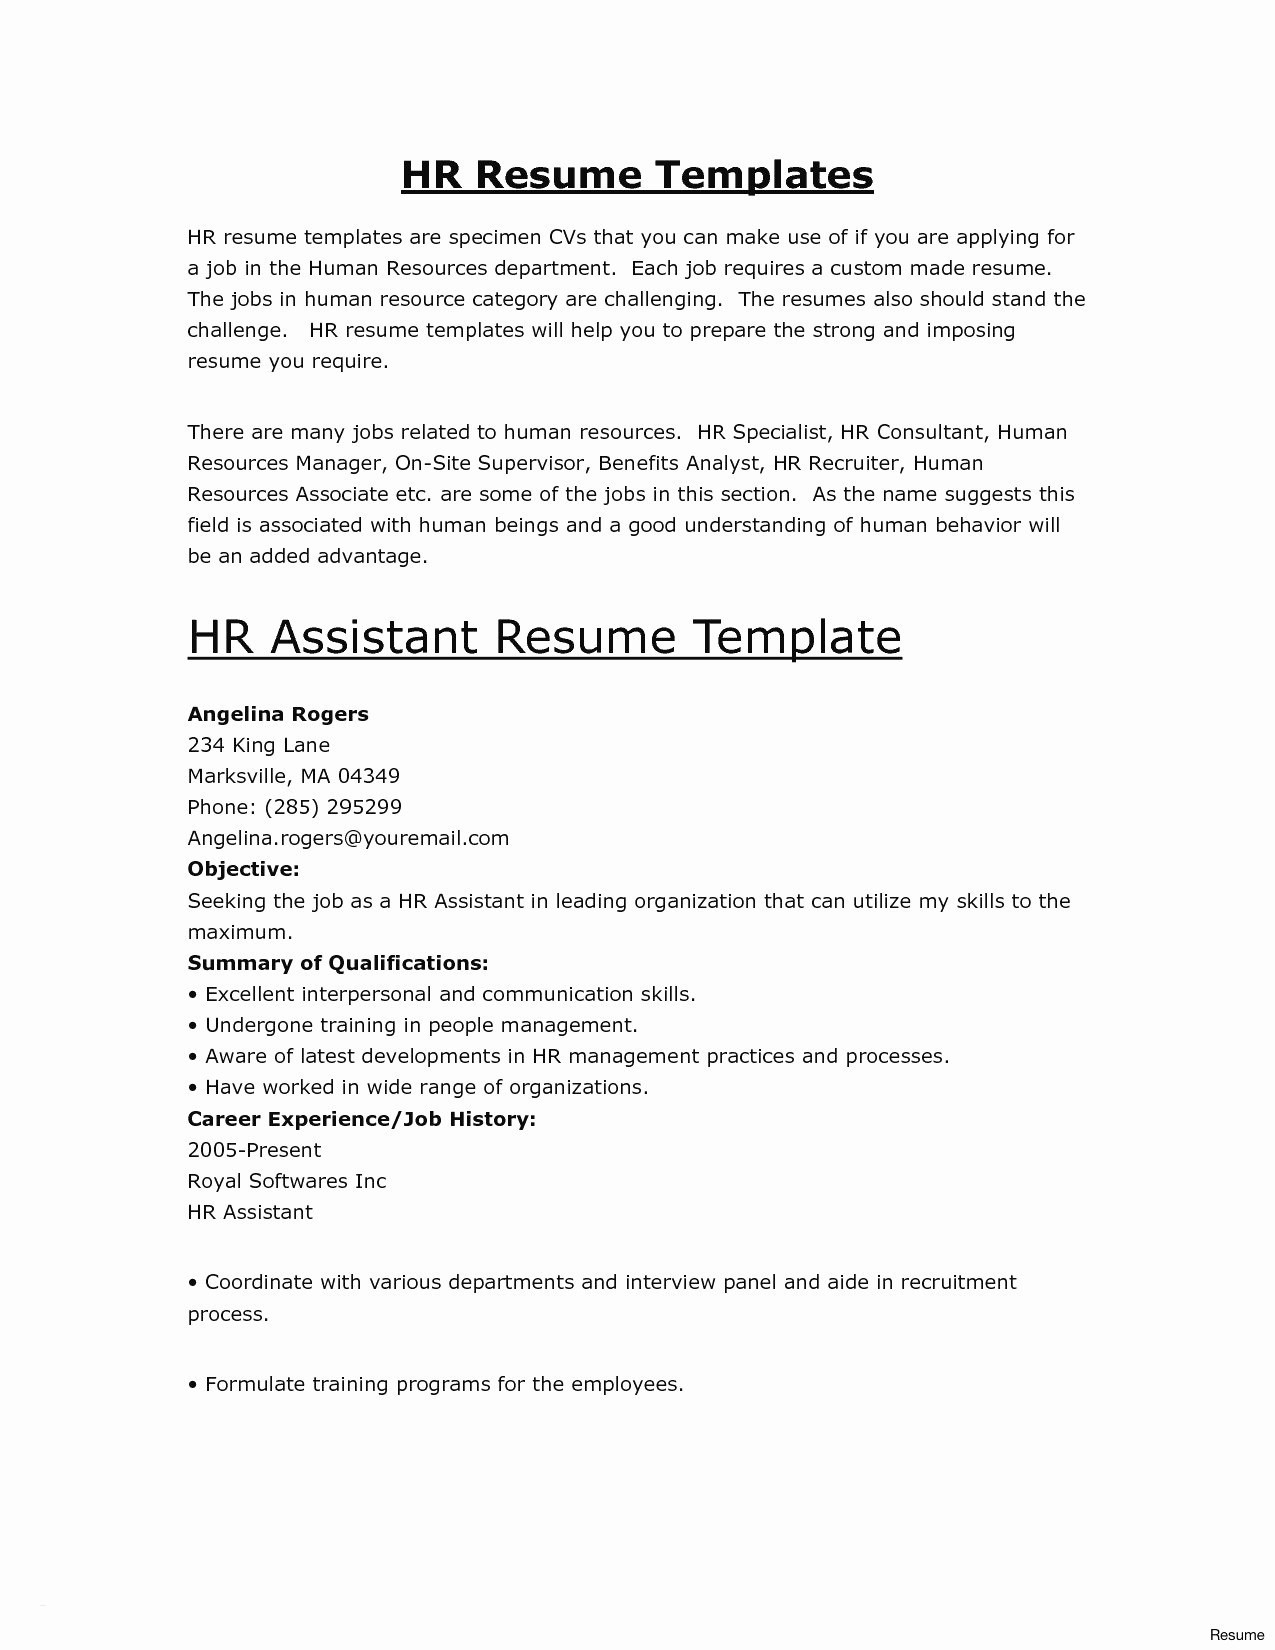 Resume Temporary Jobs - How to Write A Job Resume Unique Resume Temporary Jobs New Writing A